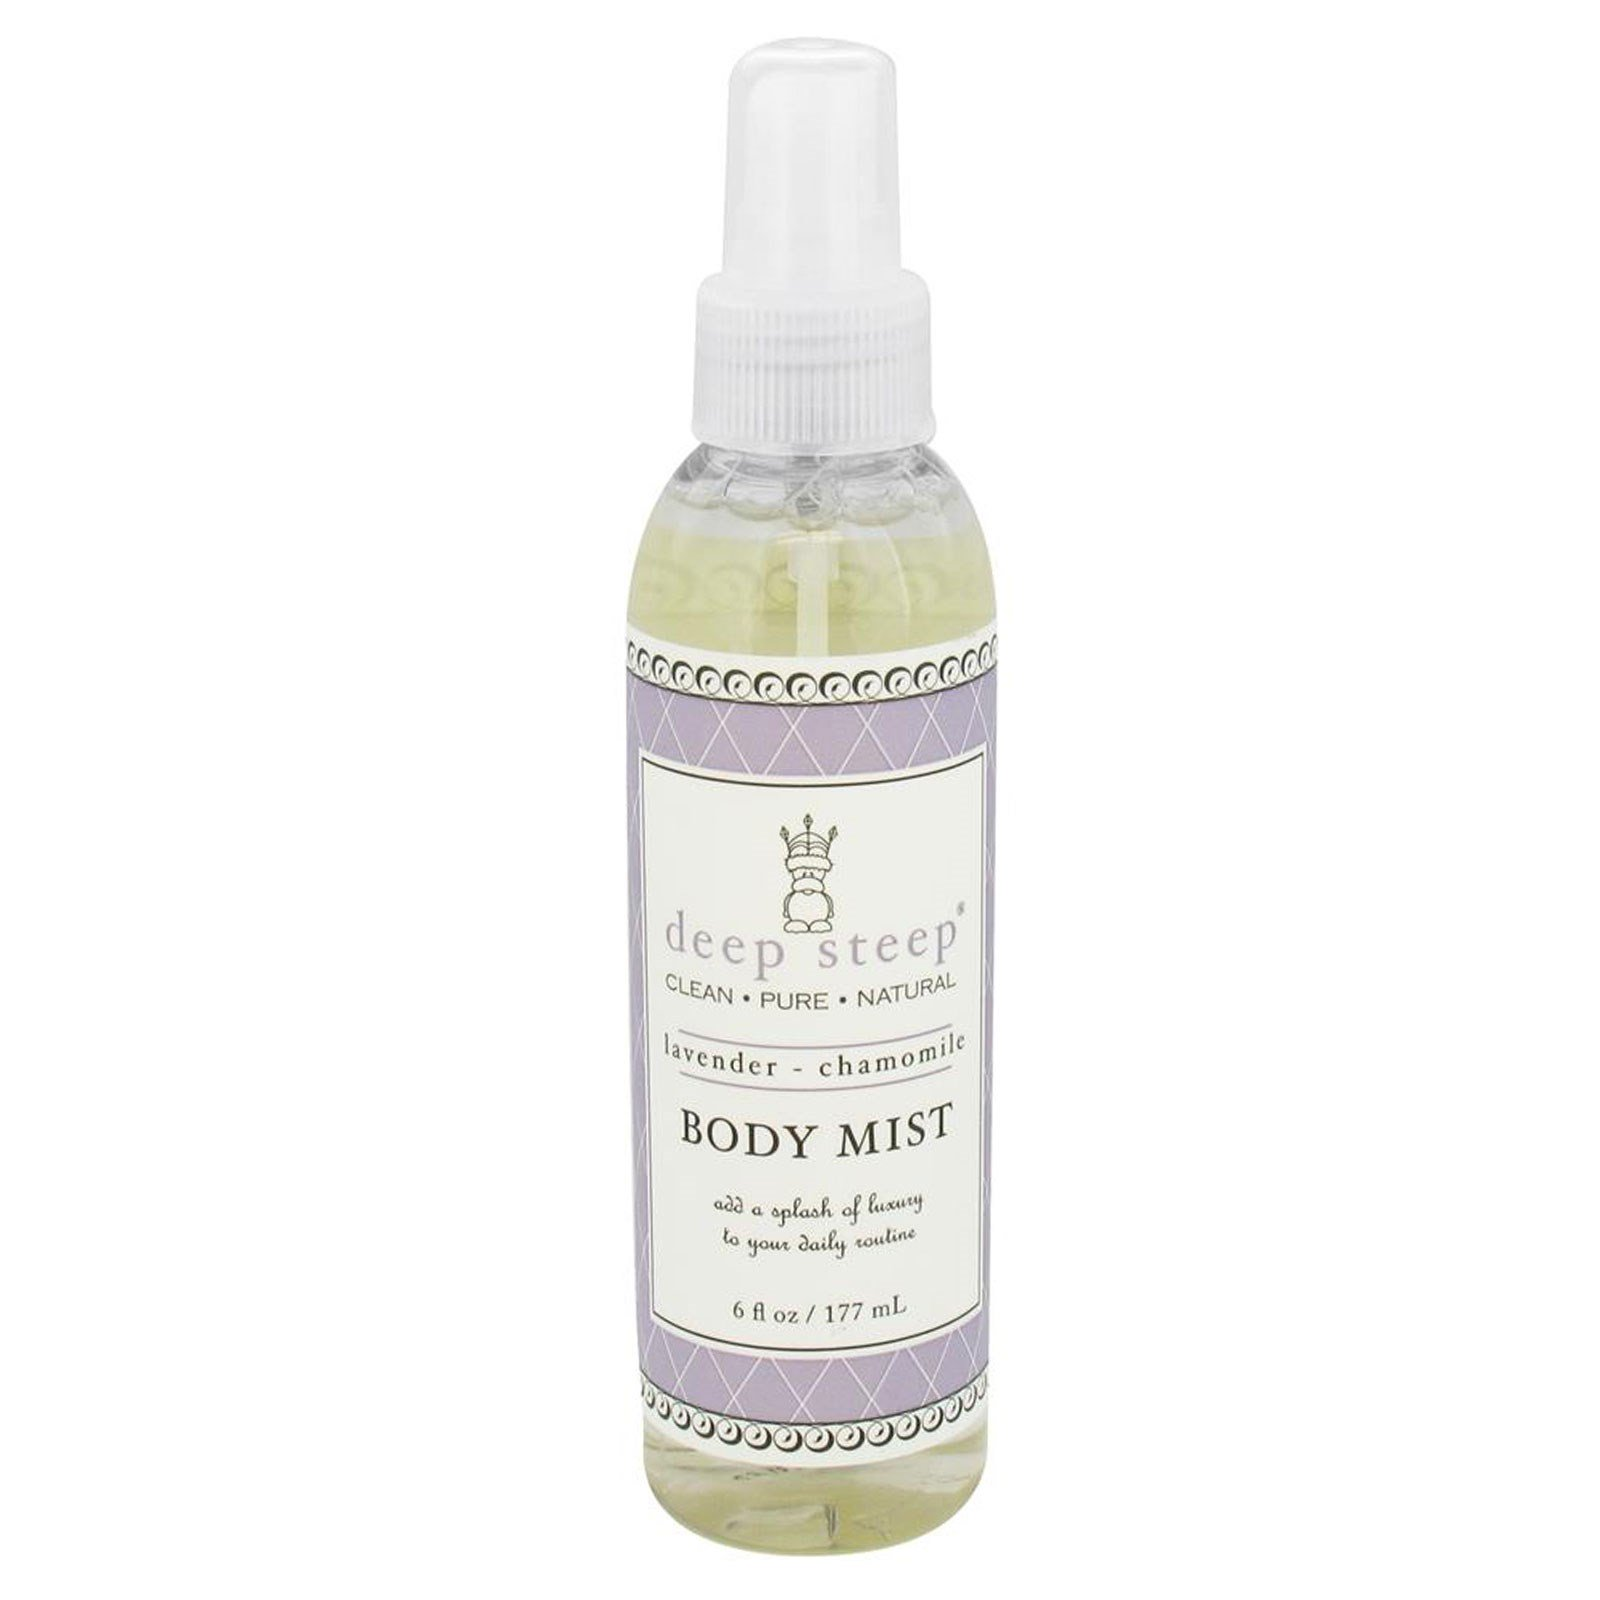 Deep Steep, Body Mist, Lavender - Chamomile, 6 fl oz (177 ml)